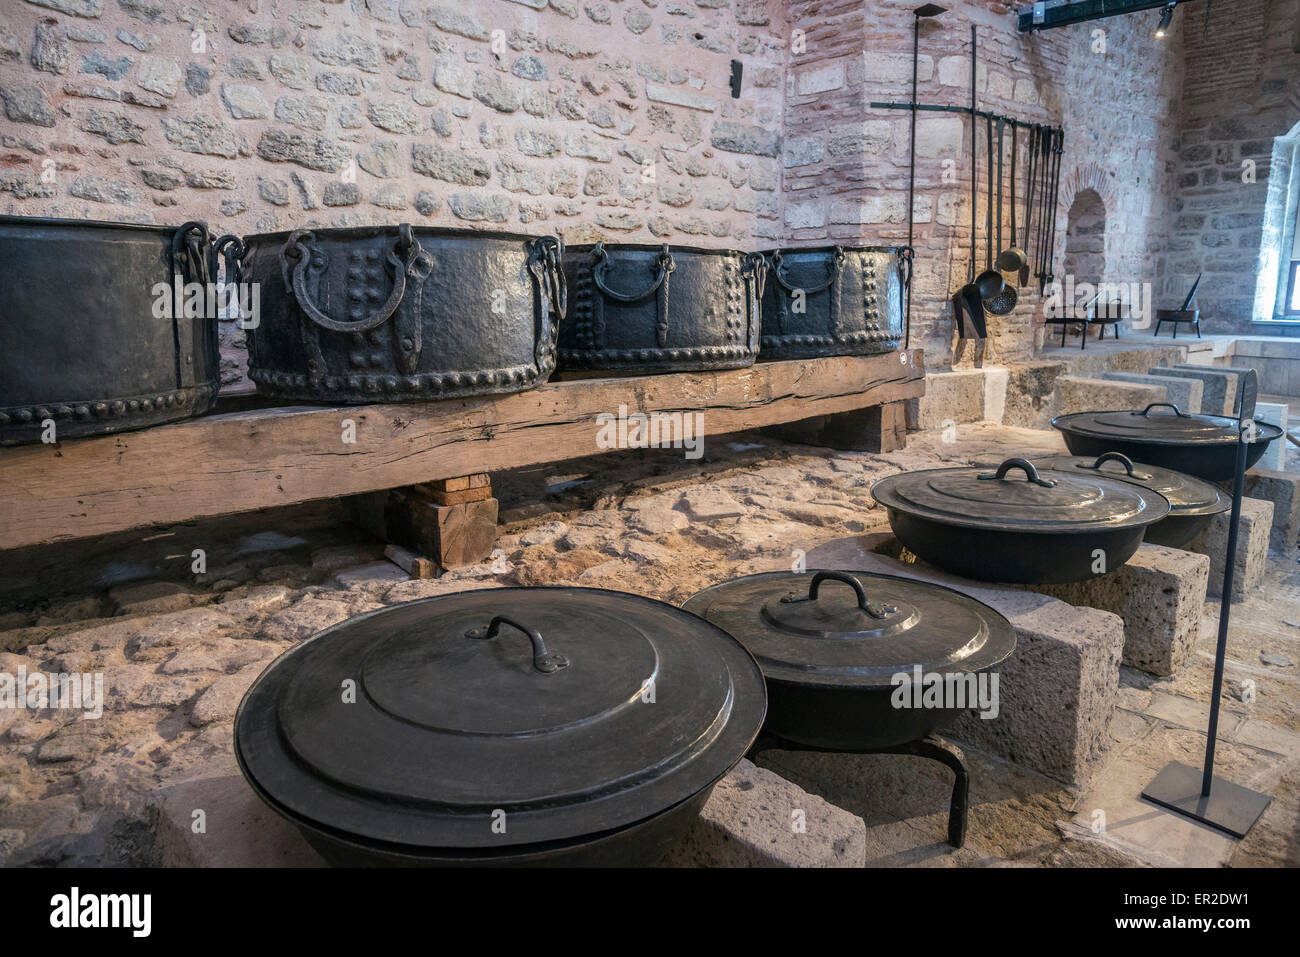 Bronze caldrons and cooking pots in The Palace Kitchens at Topkapi Palace, Istanbul, Turkey. - Stock Image